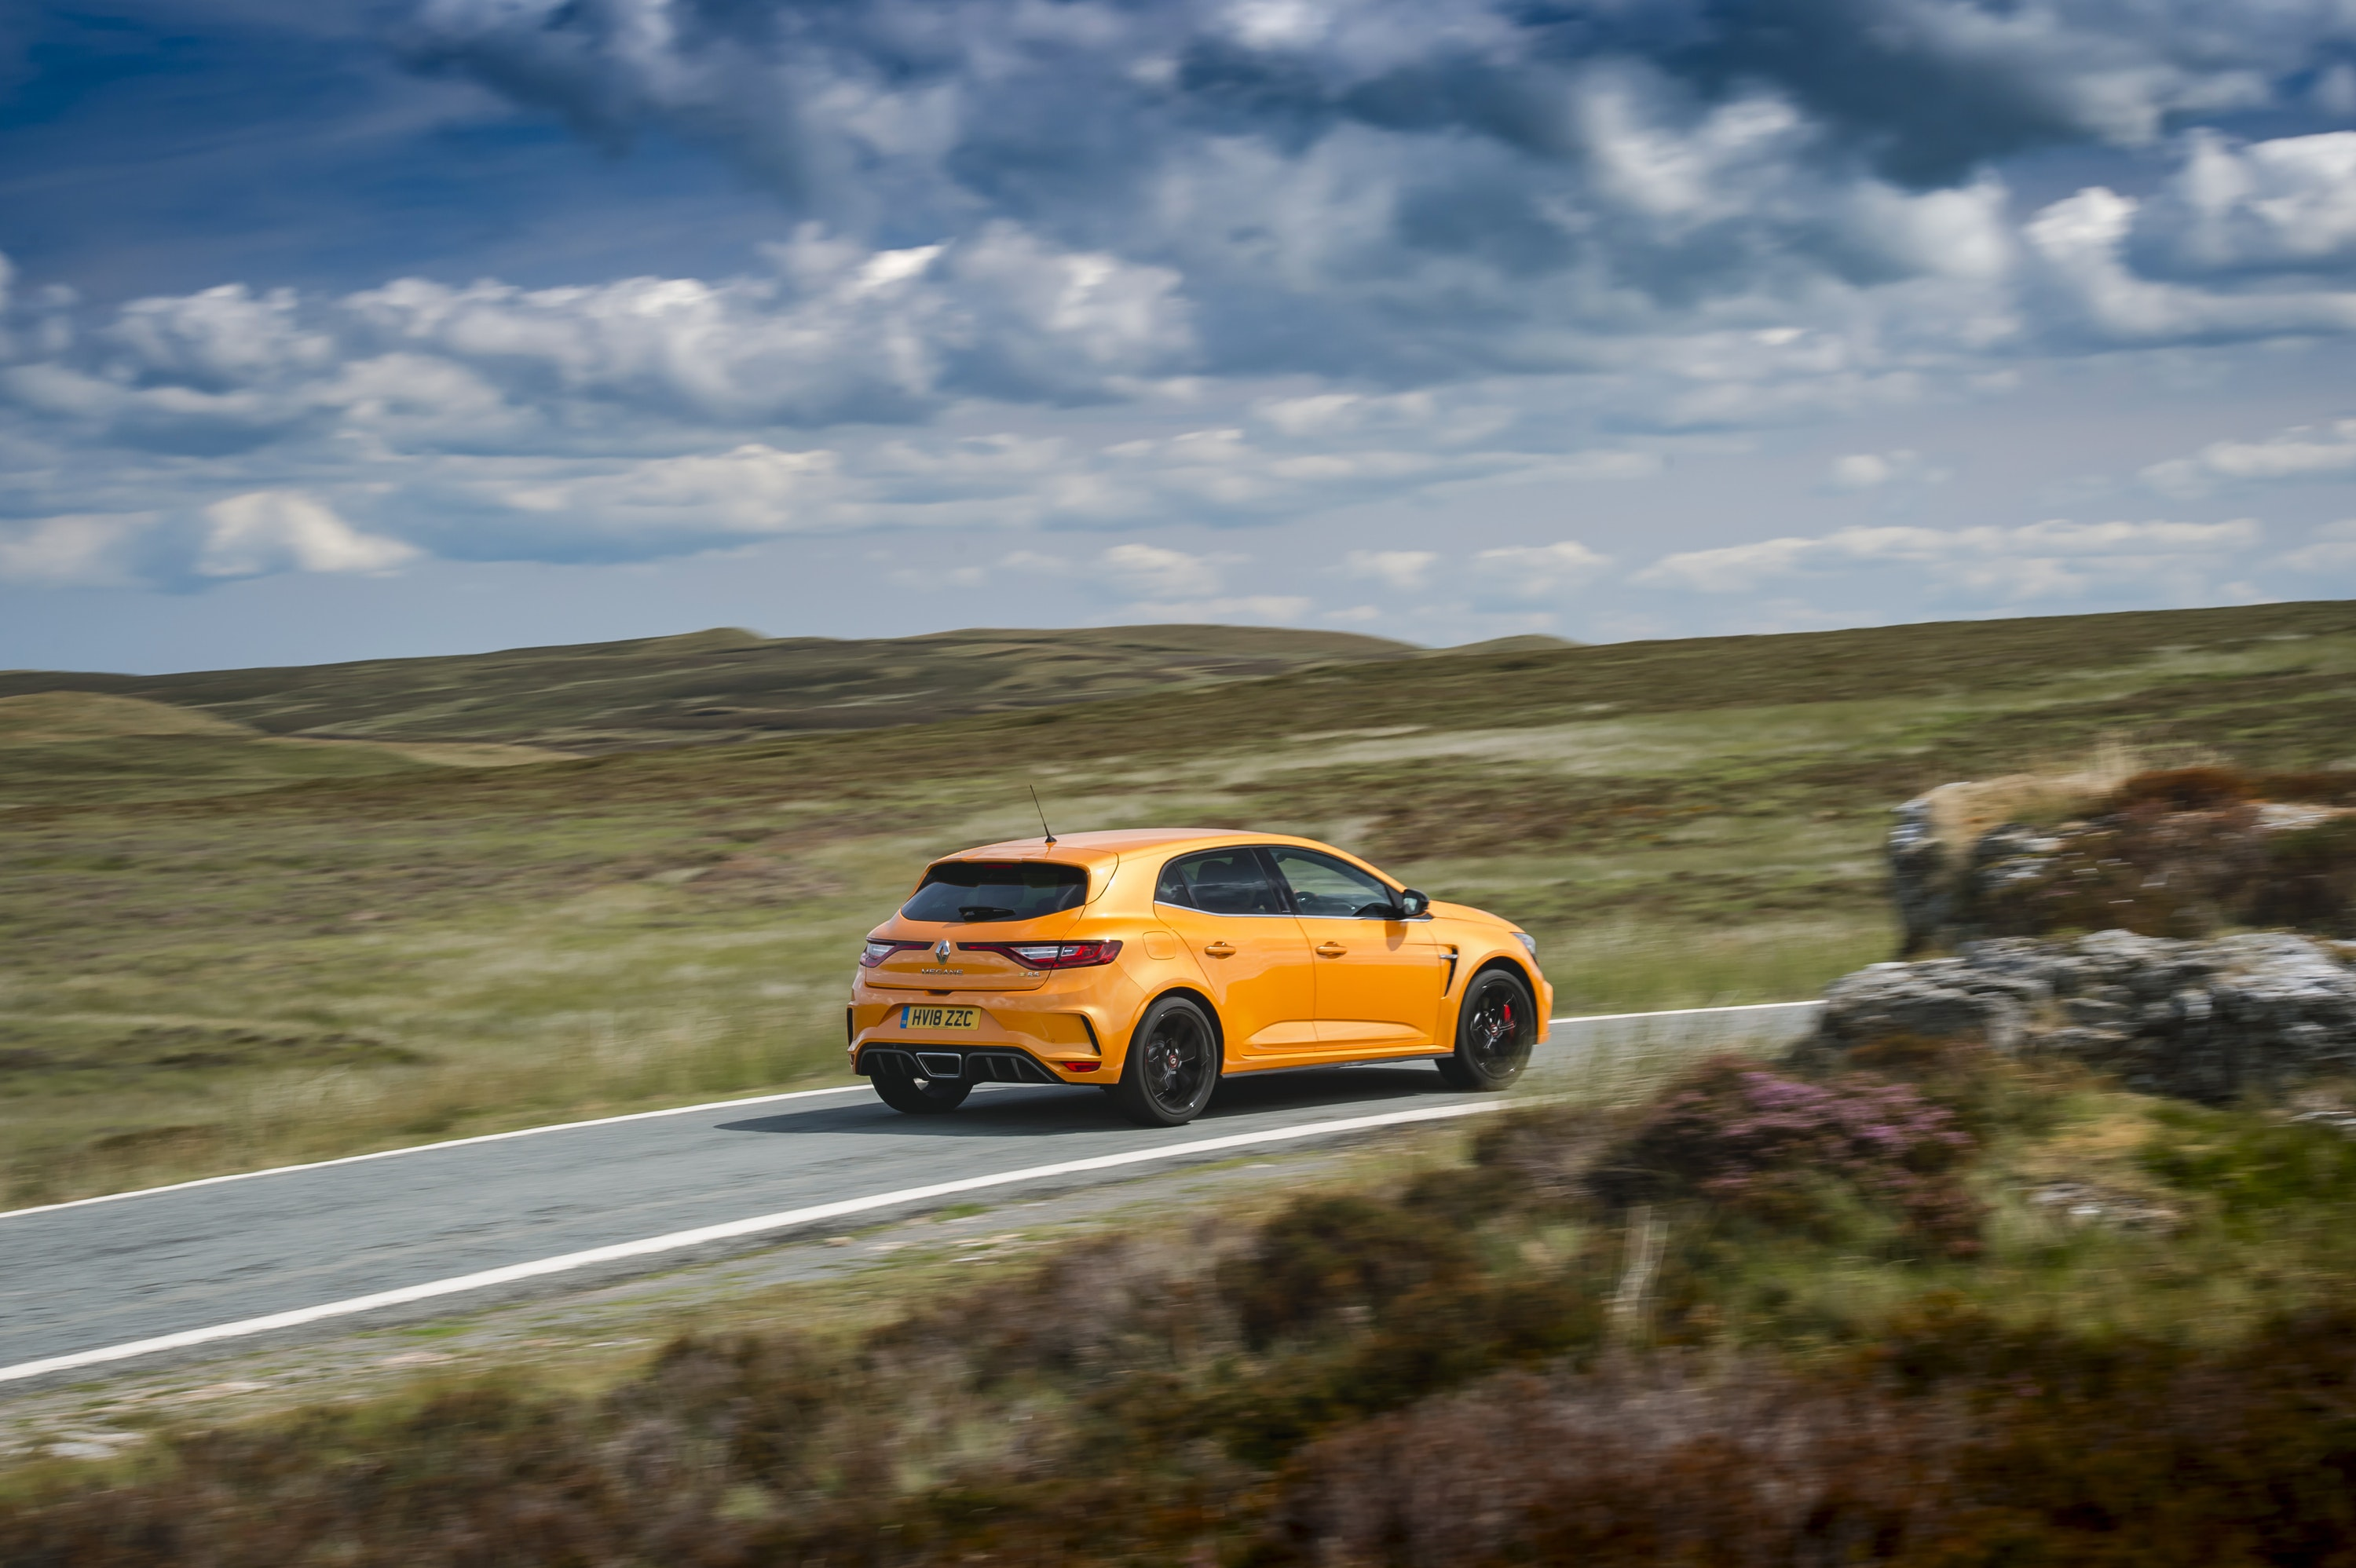 rear view of a orange Renault Megane RS driving on a road